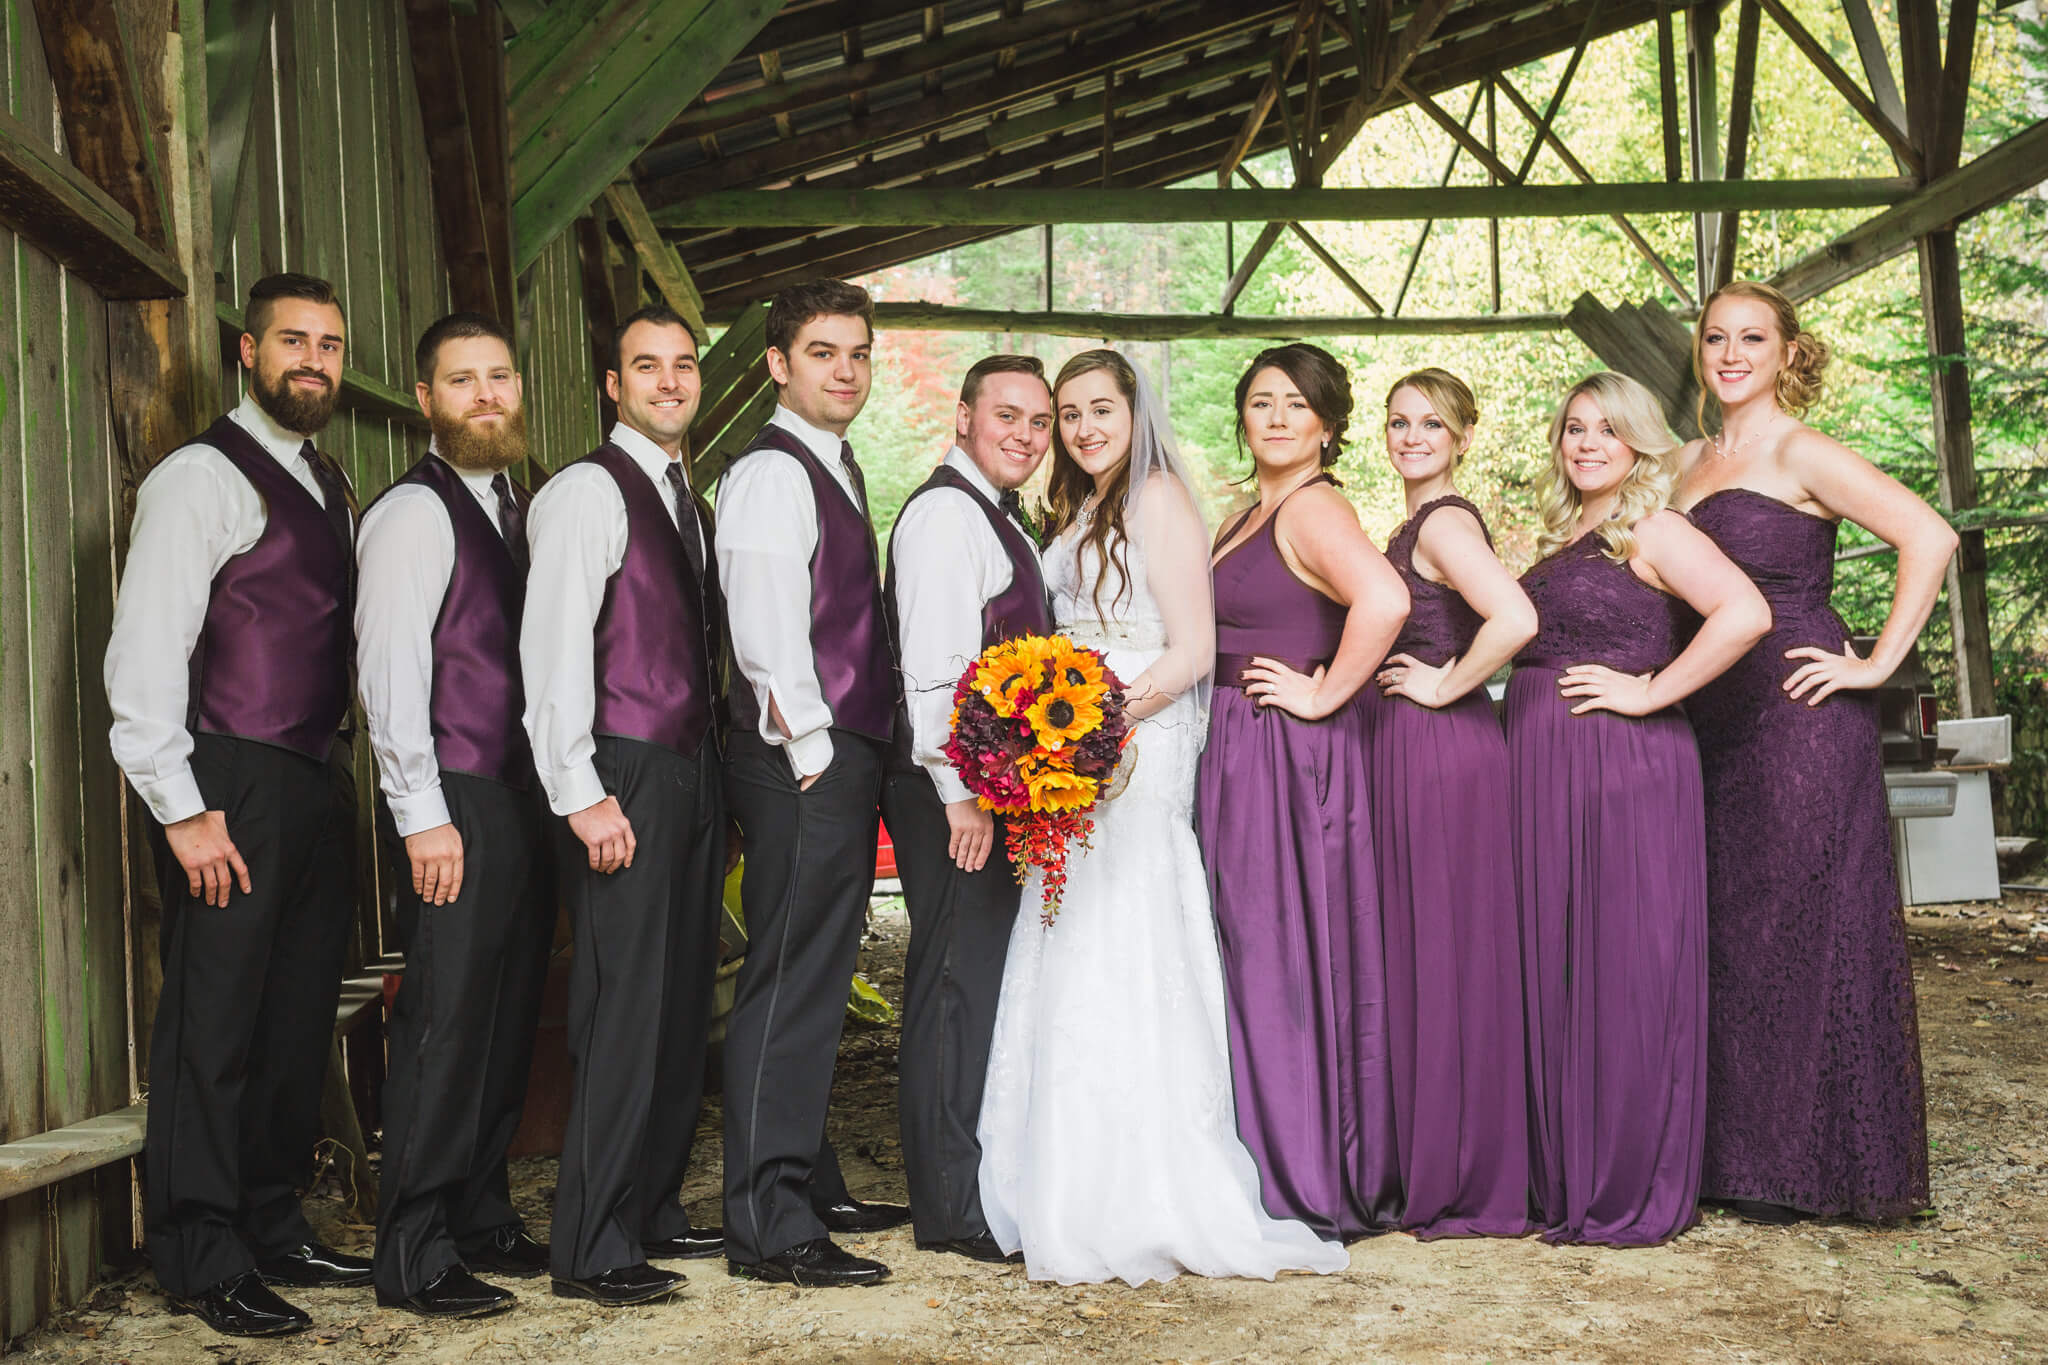 Mitcham's Barn Wedding-89.JPG